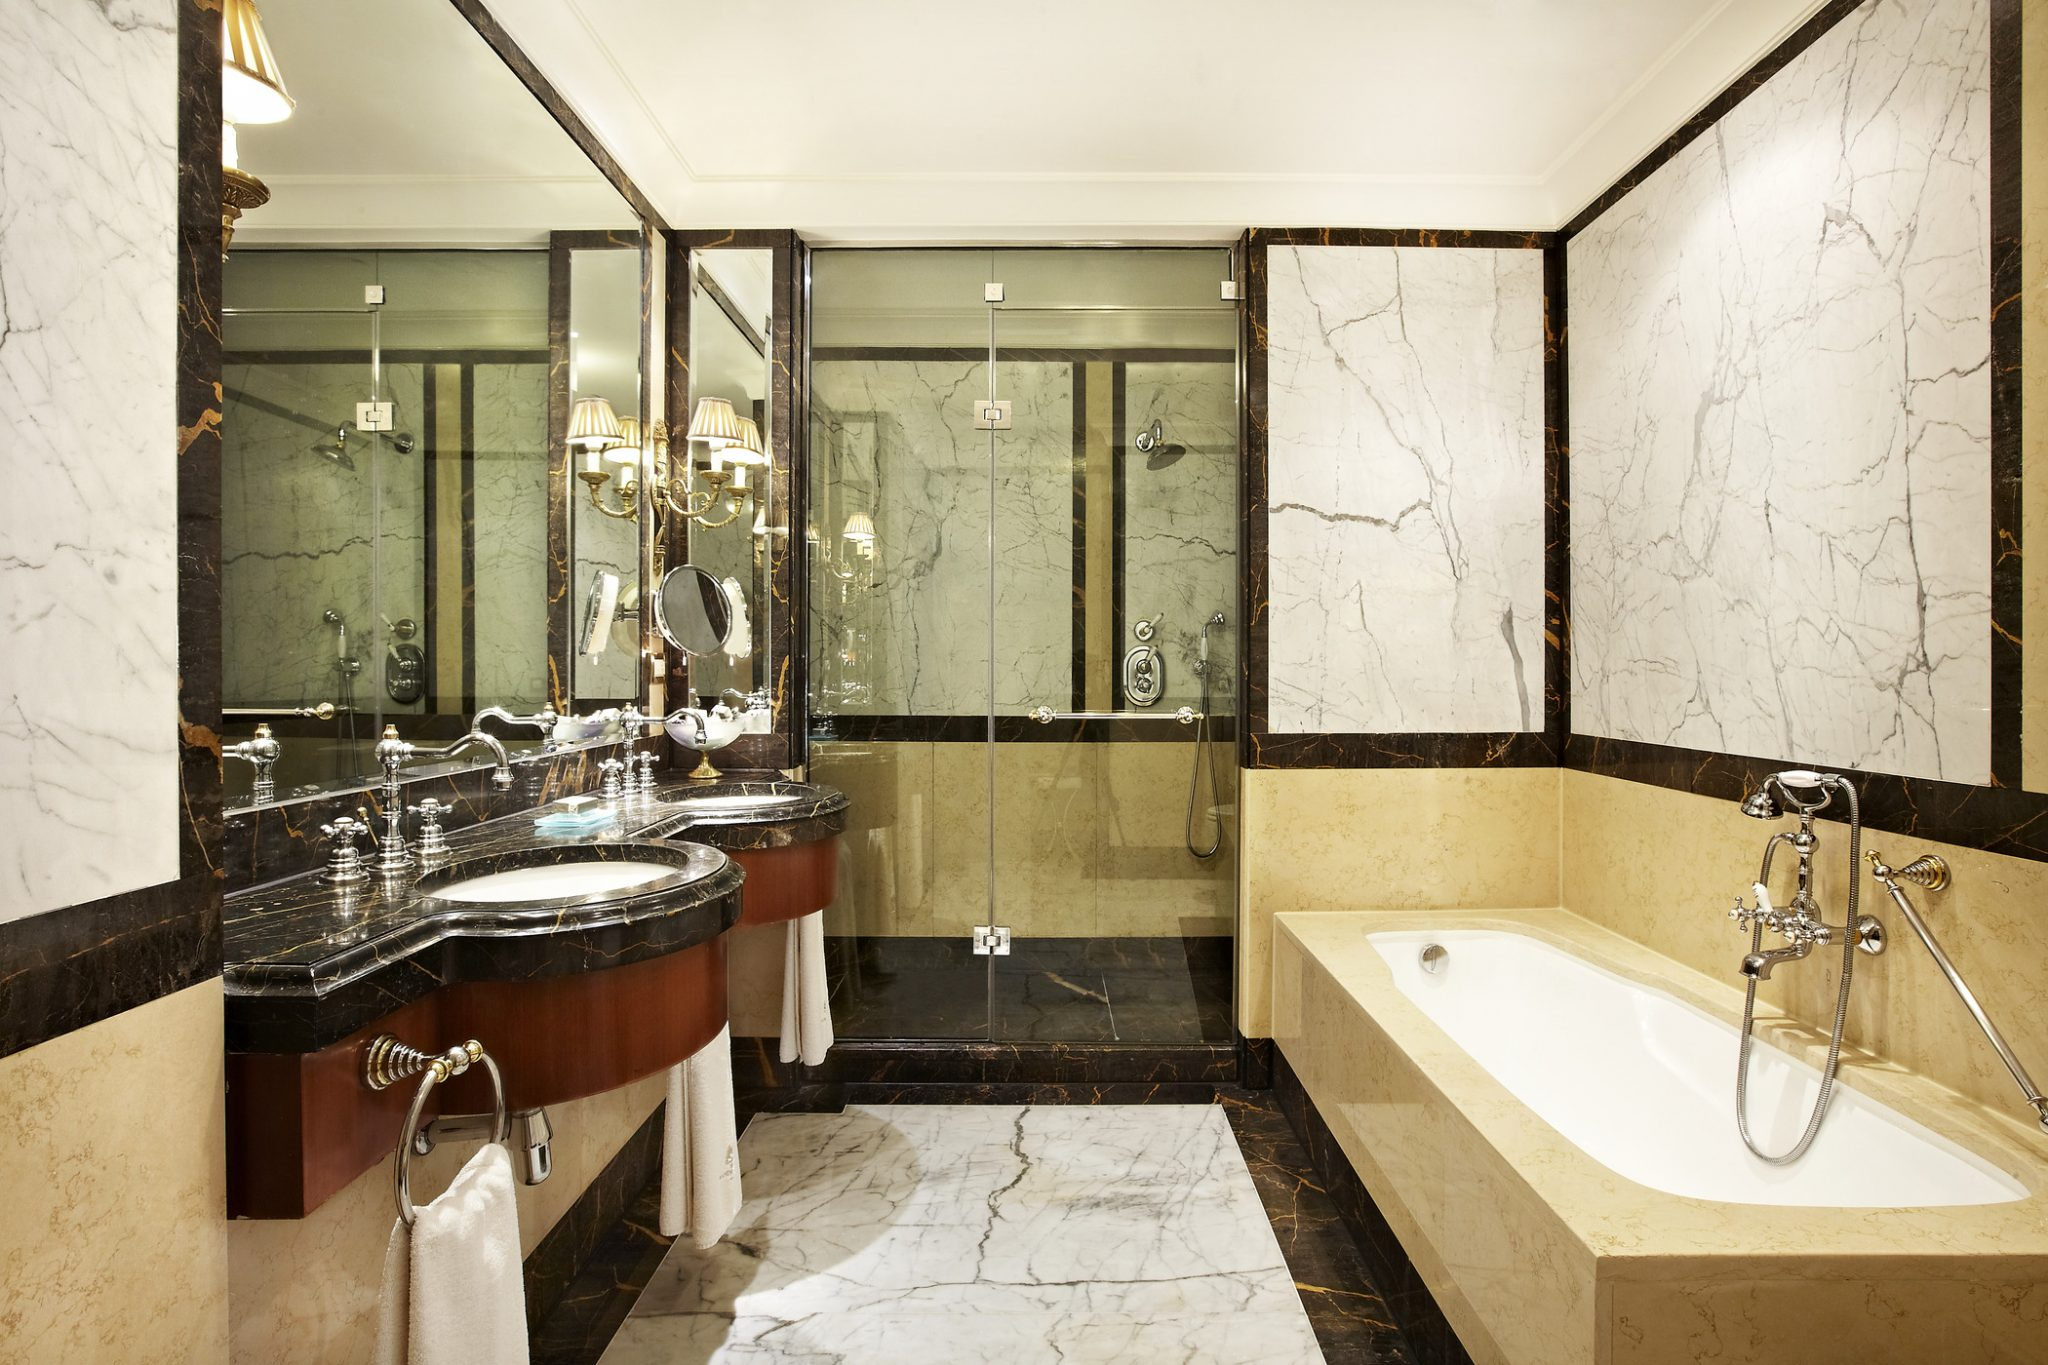 Bathroom at Hotel Grande Bretagne, Athens, Greece